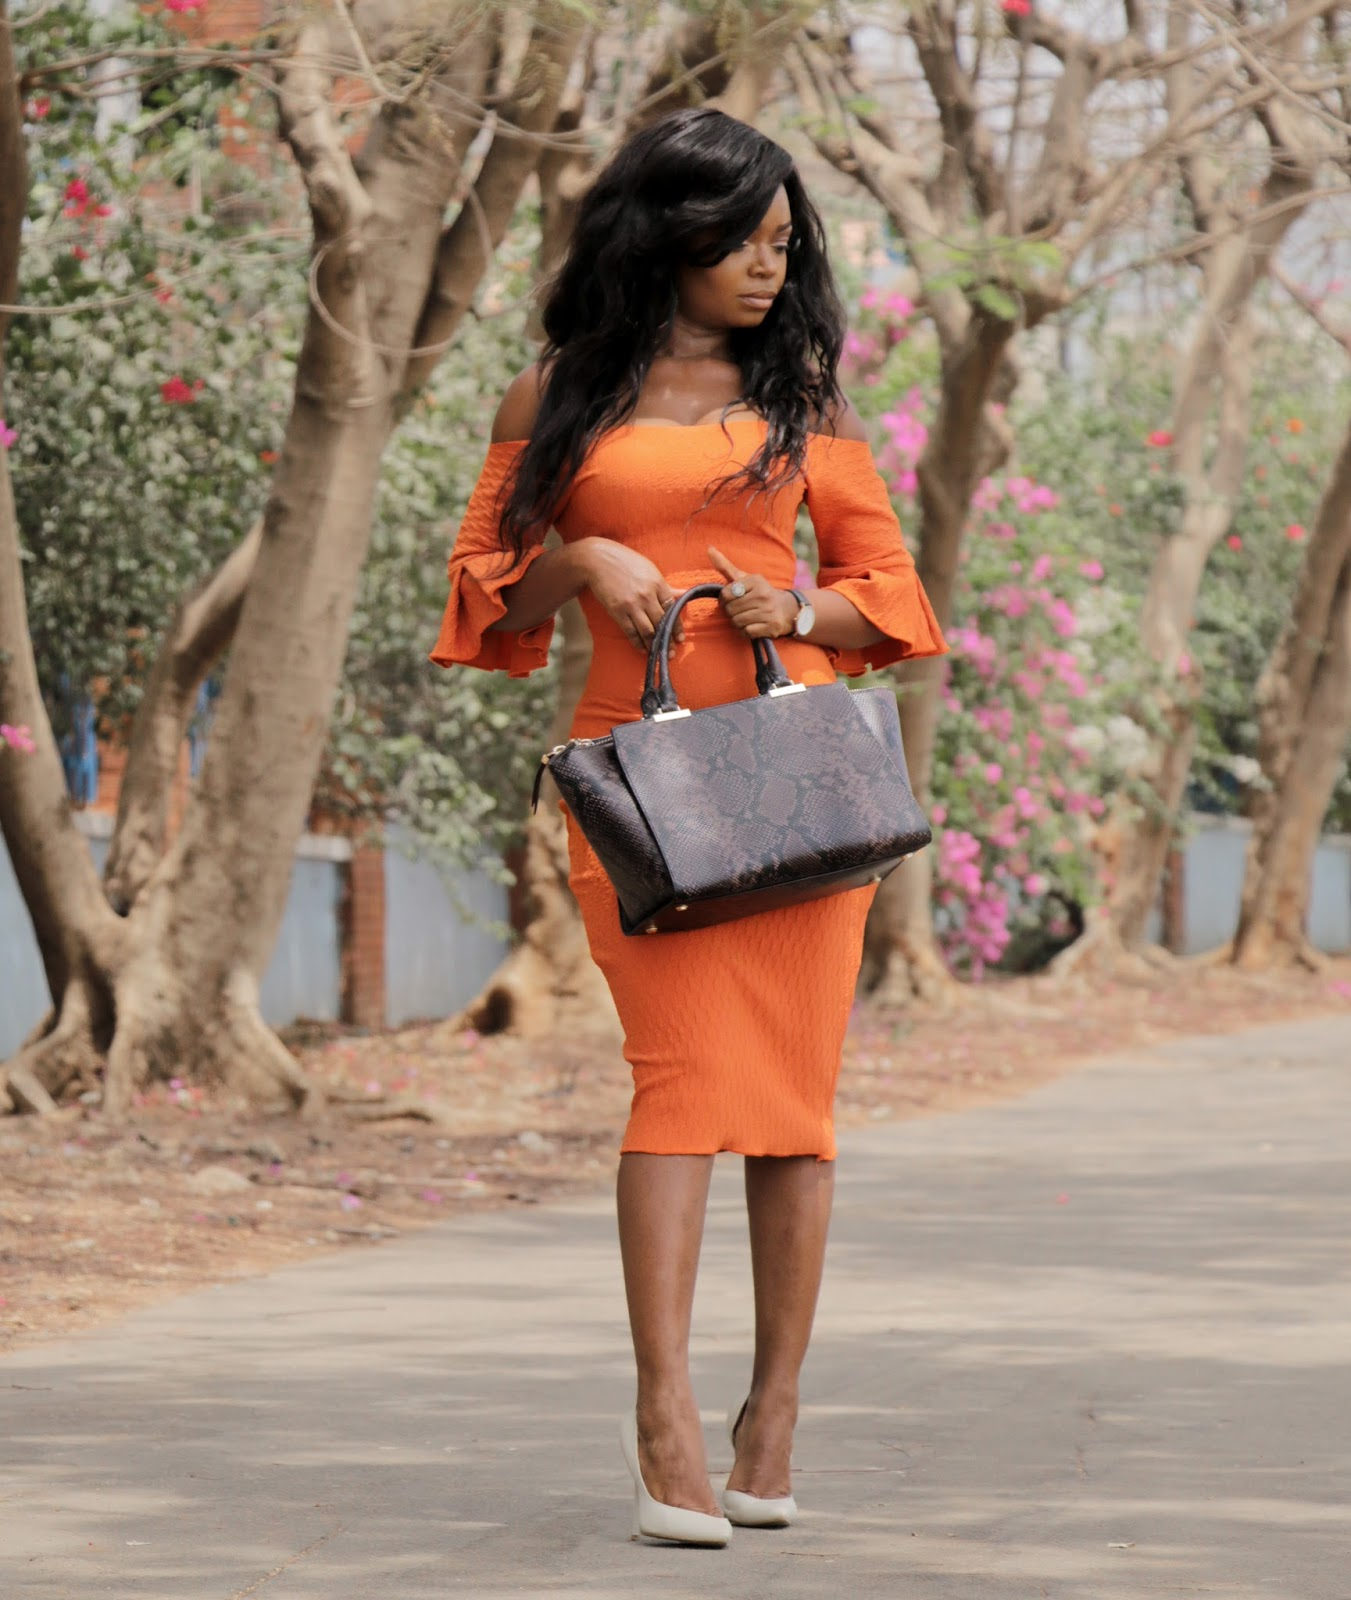 THE FLYGERIAN -  Snake Print Bag from The Flygerian and Orange Dress from Kitau with Boohoo court shoes